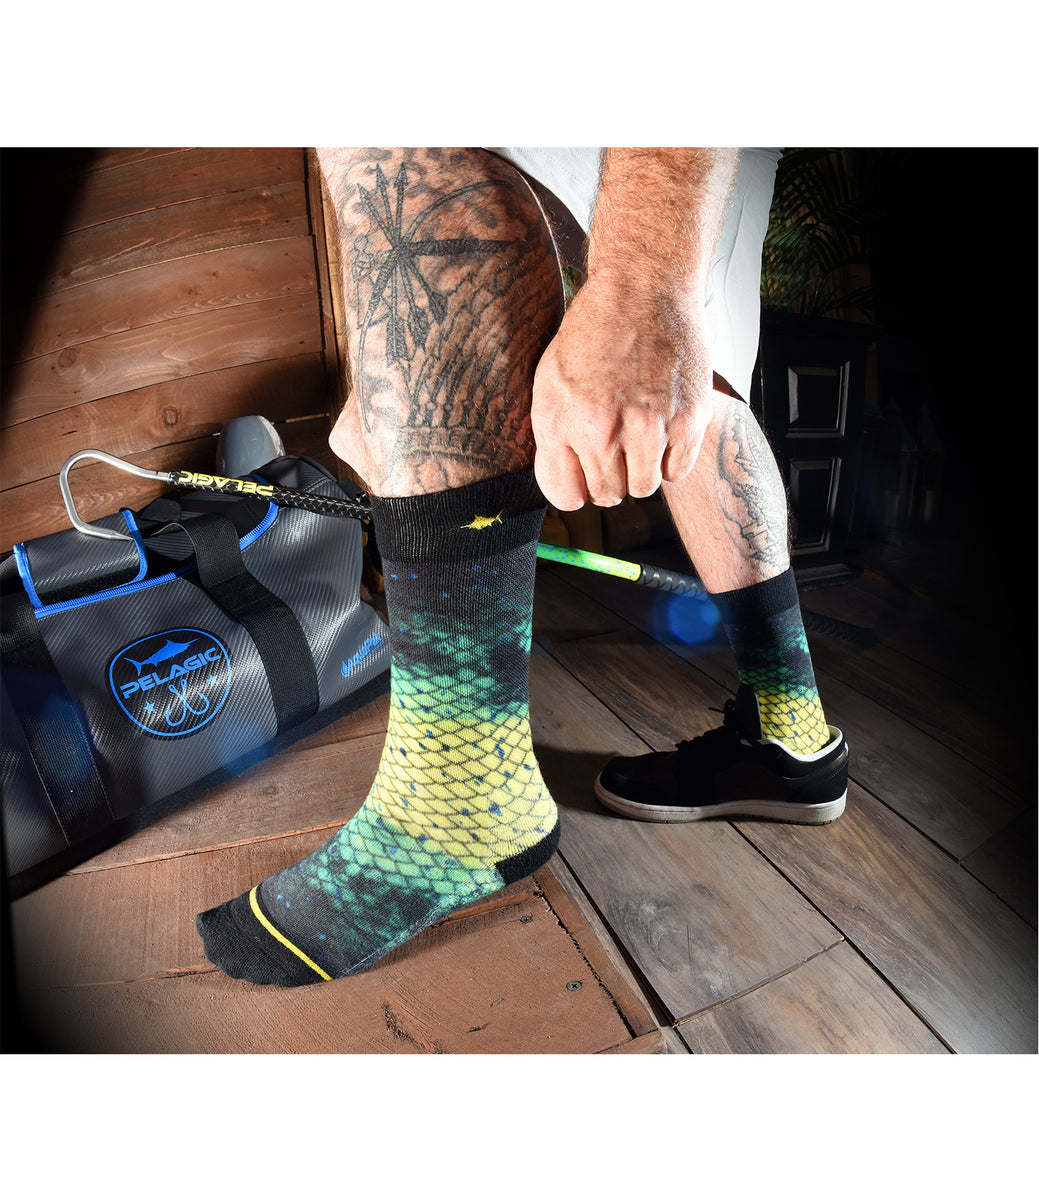 Proform Socks 2-Pack Dorado Big Image - 3